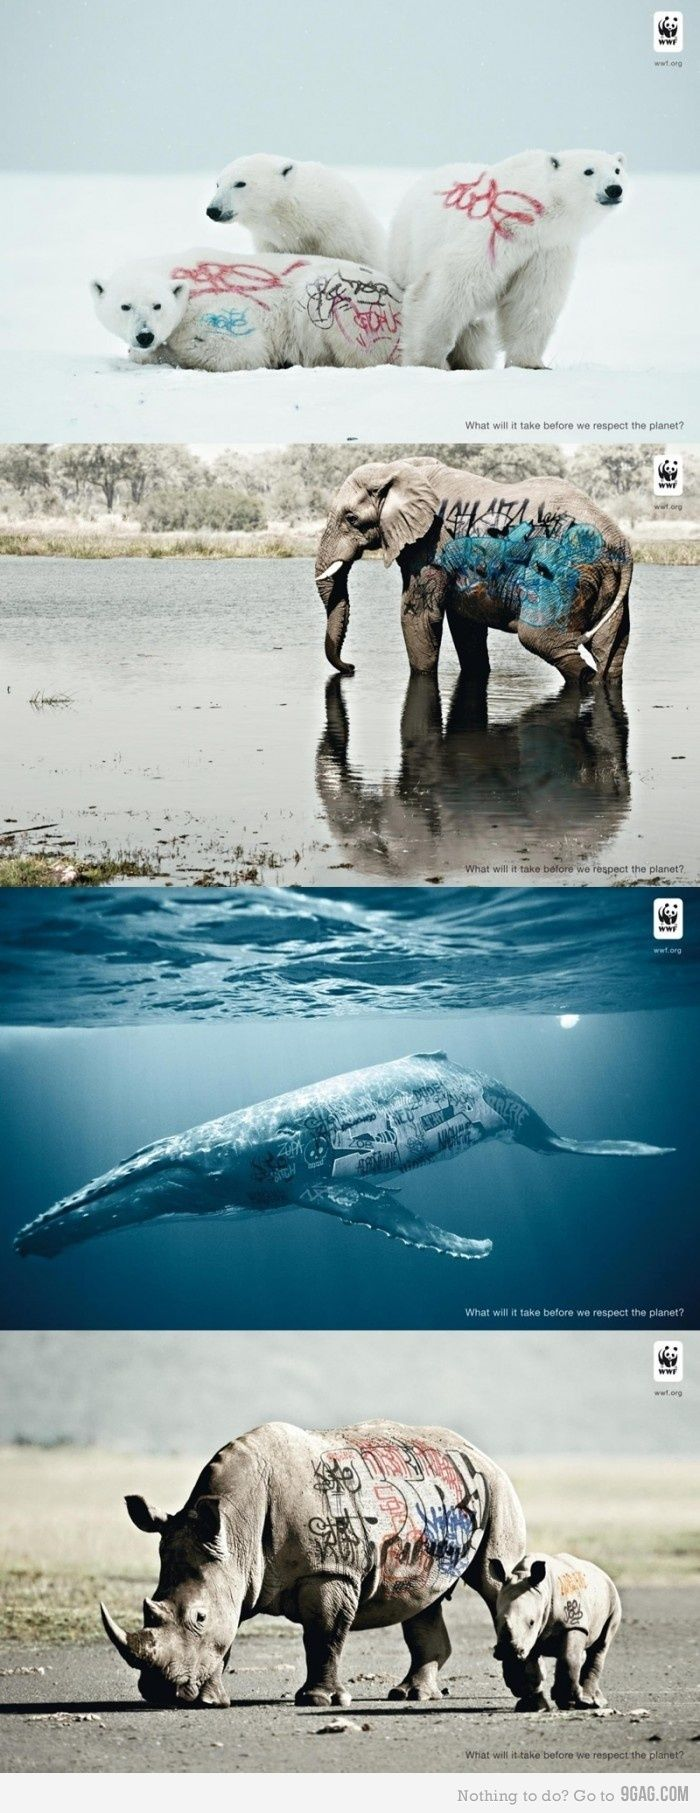 Creative-Advertising-Creative-WWF-ad-What-will-it-take Creative Advertising : Creative WWF ad: What will it take before we respect the planet?